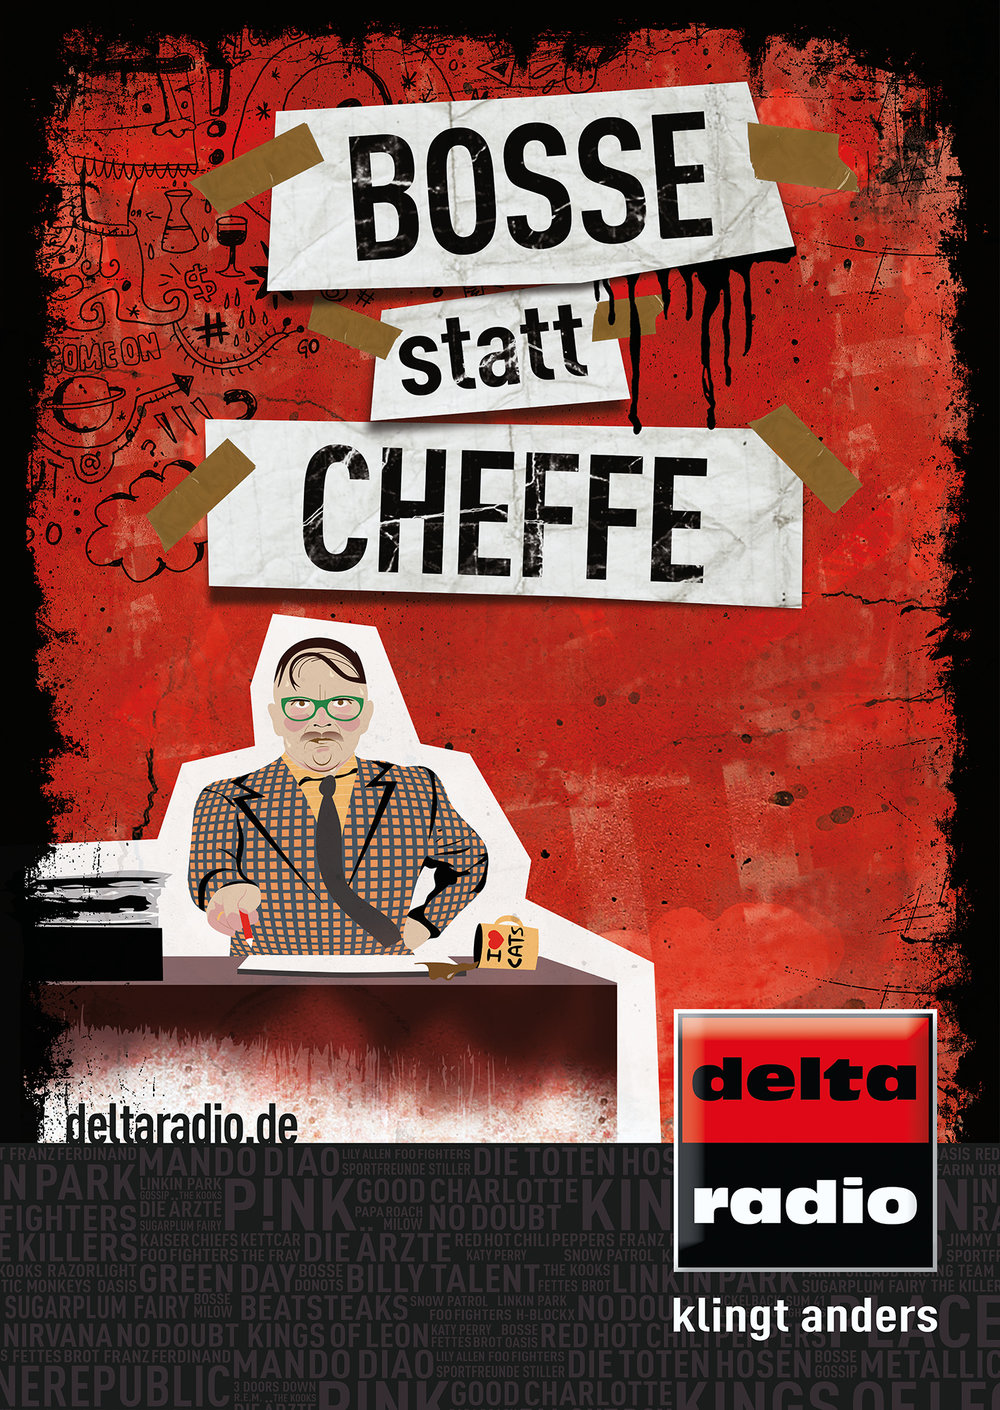 rbtq_Illustration_Seiser_Illustratorin_Hamburg_Editorial_DeltaRadio_Bosse.jpg